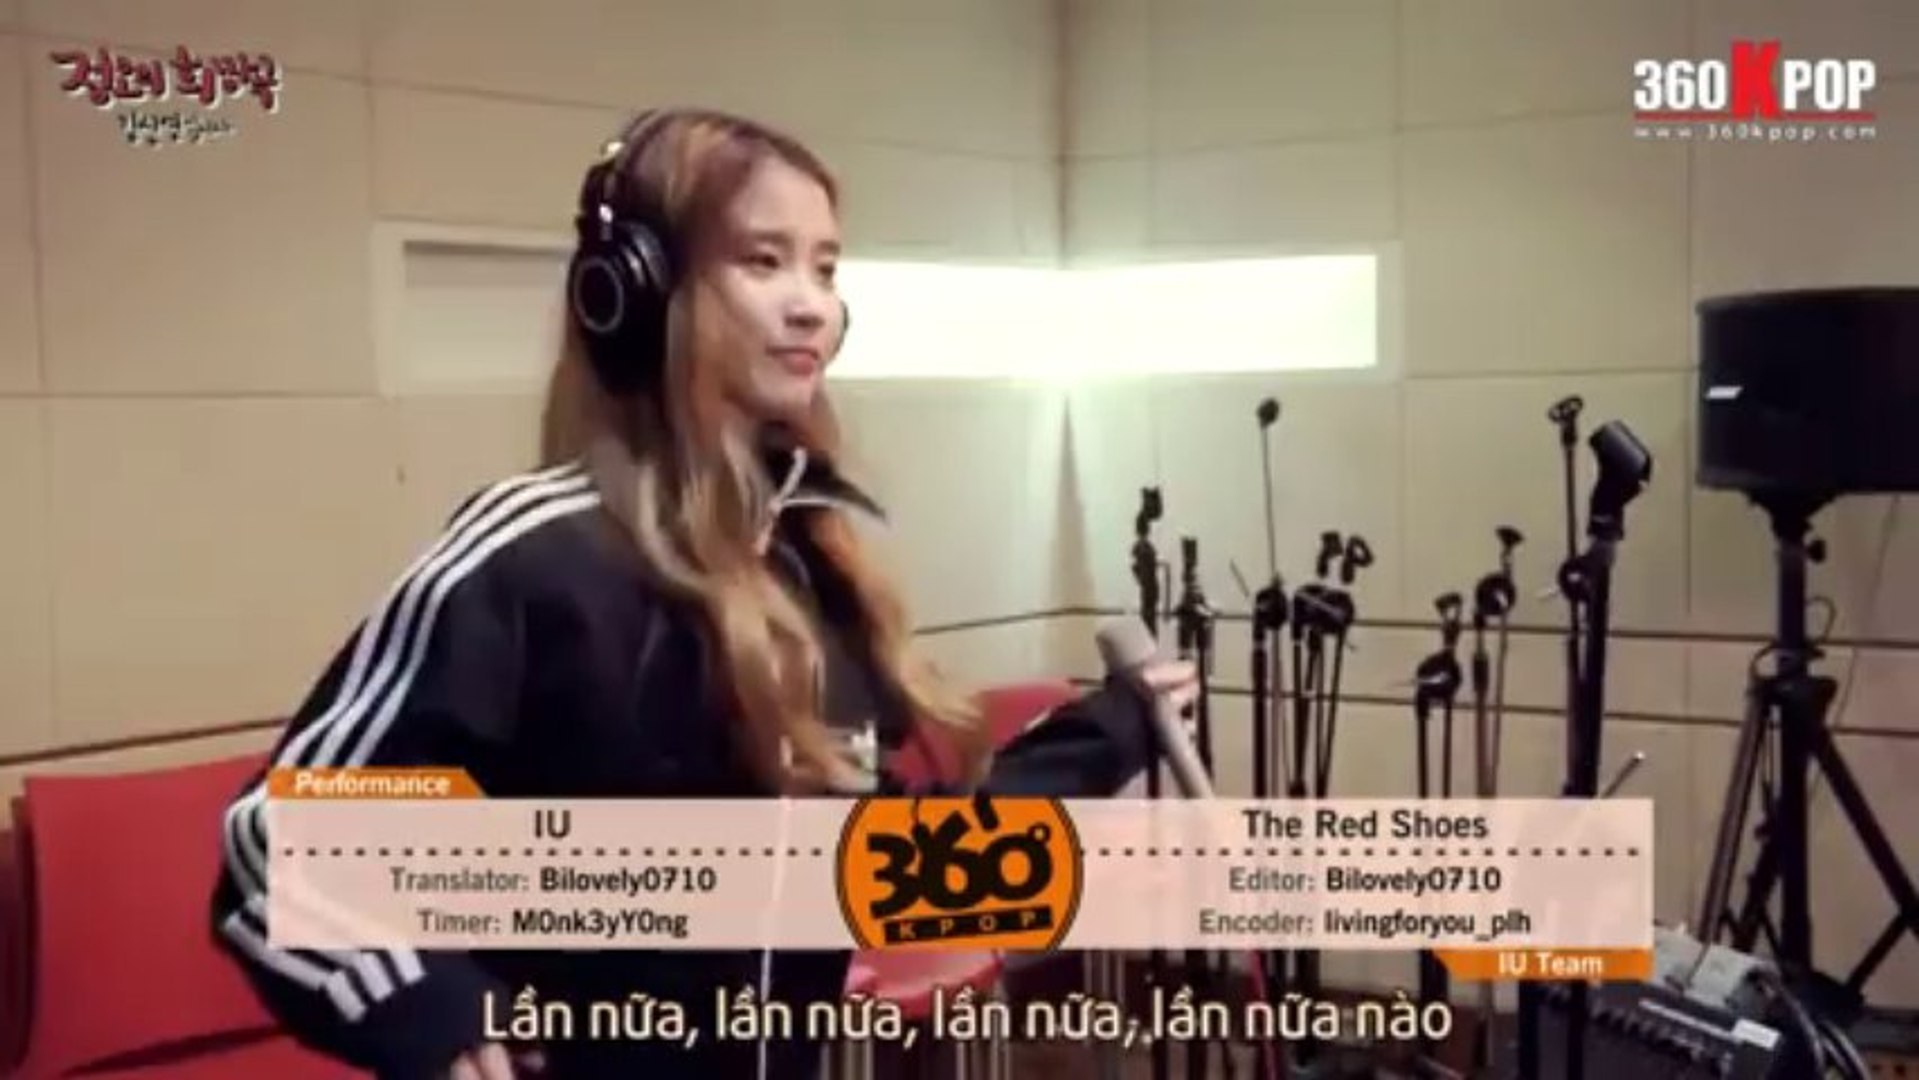 [Vietsub][Live] IU - The Red Shoes @ 131014 MBC Radio Jung Oh's Hope Song [IU Team]